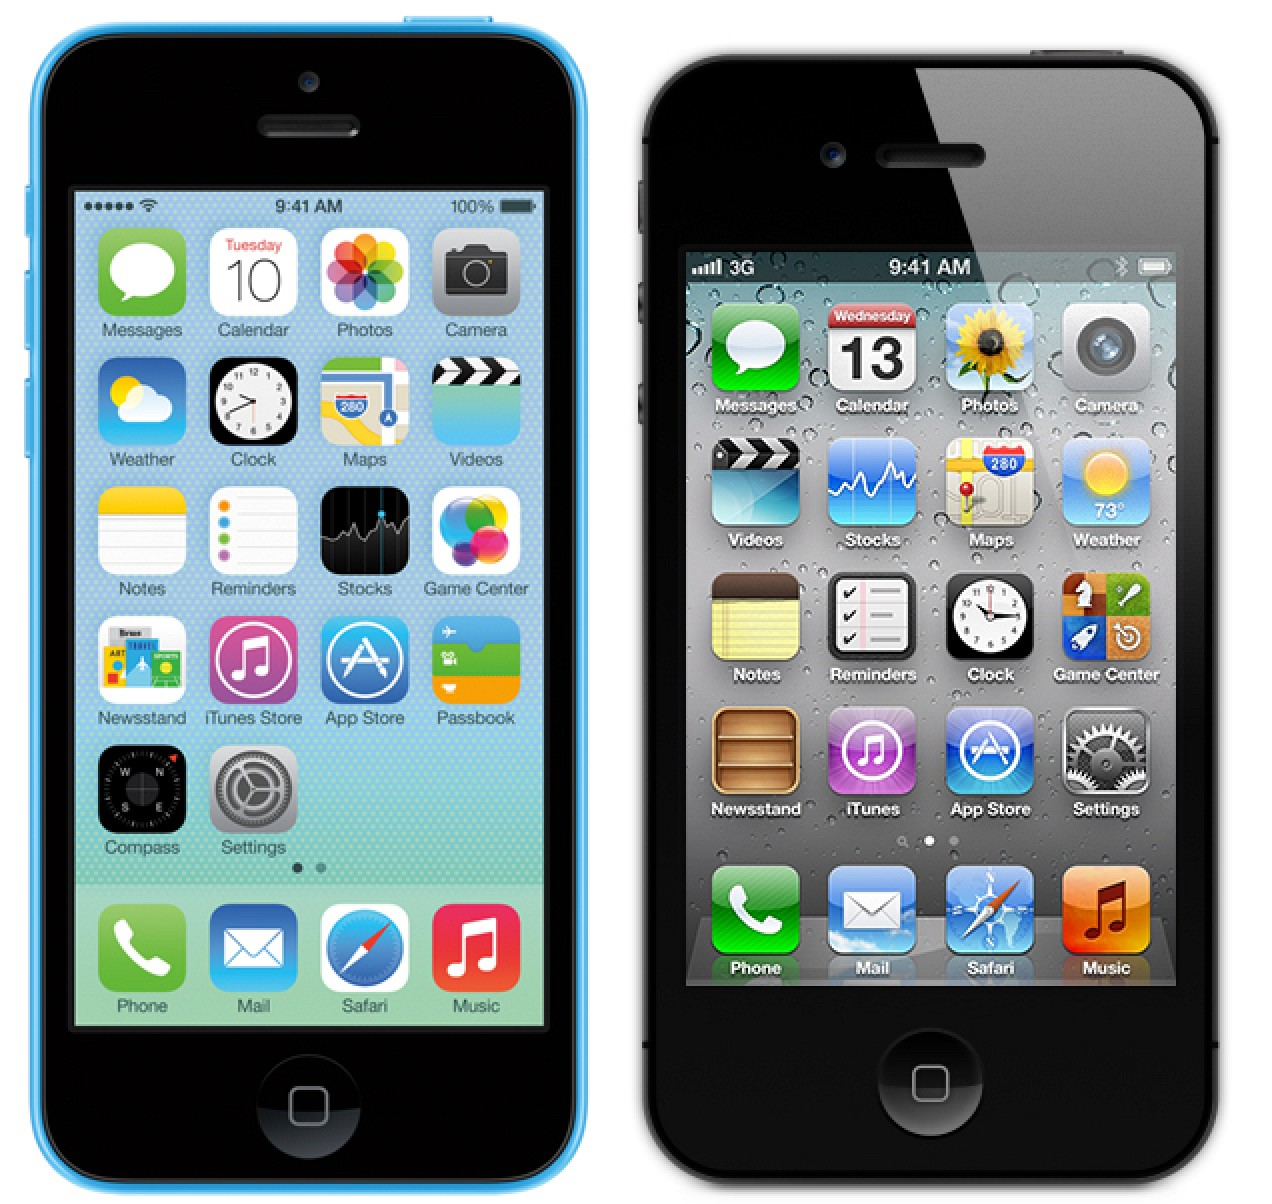 Apple Withdraws iPhone 4s, 5c Handsets From India - MacRumors